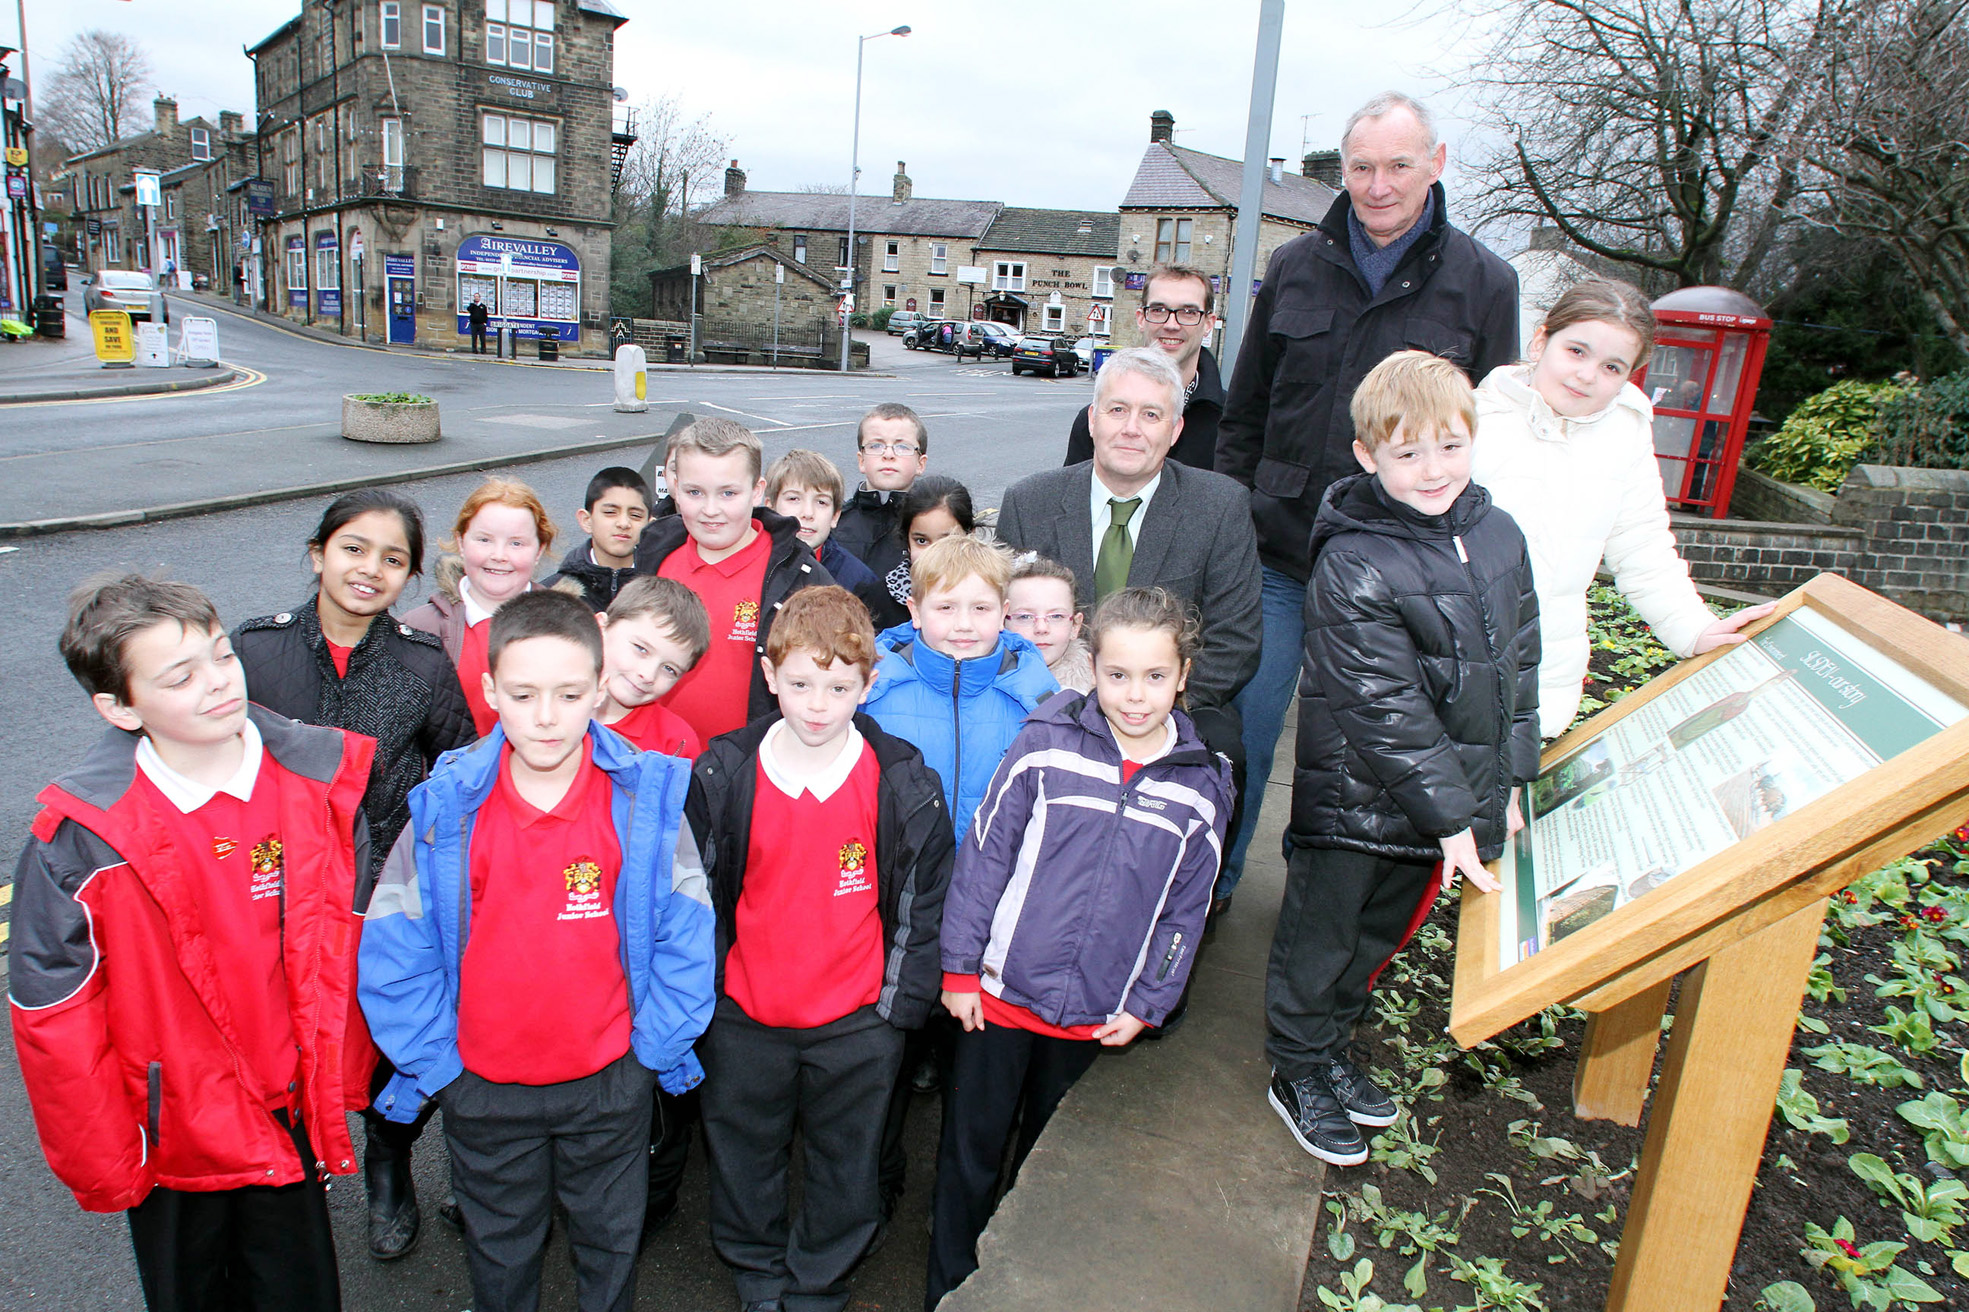 Charlie Driver and Laila Heslop, of Hothfield Junior School's archaeology club, look at the information board with Councillor Andrew Mallinson (centre) David Mason of Silsden Local History Group, children from the school and headteacher James Procter